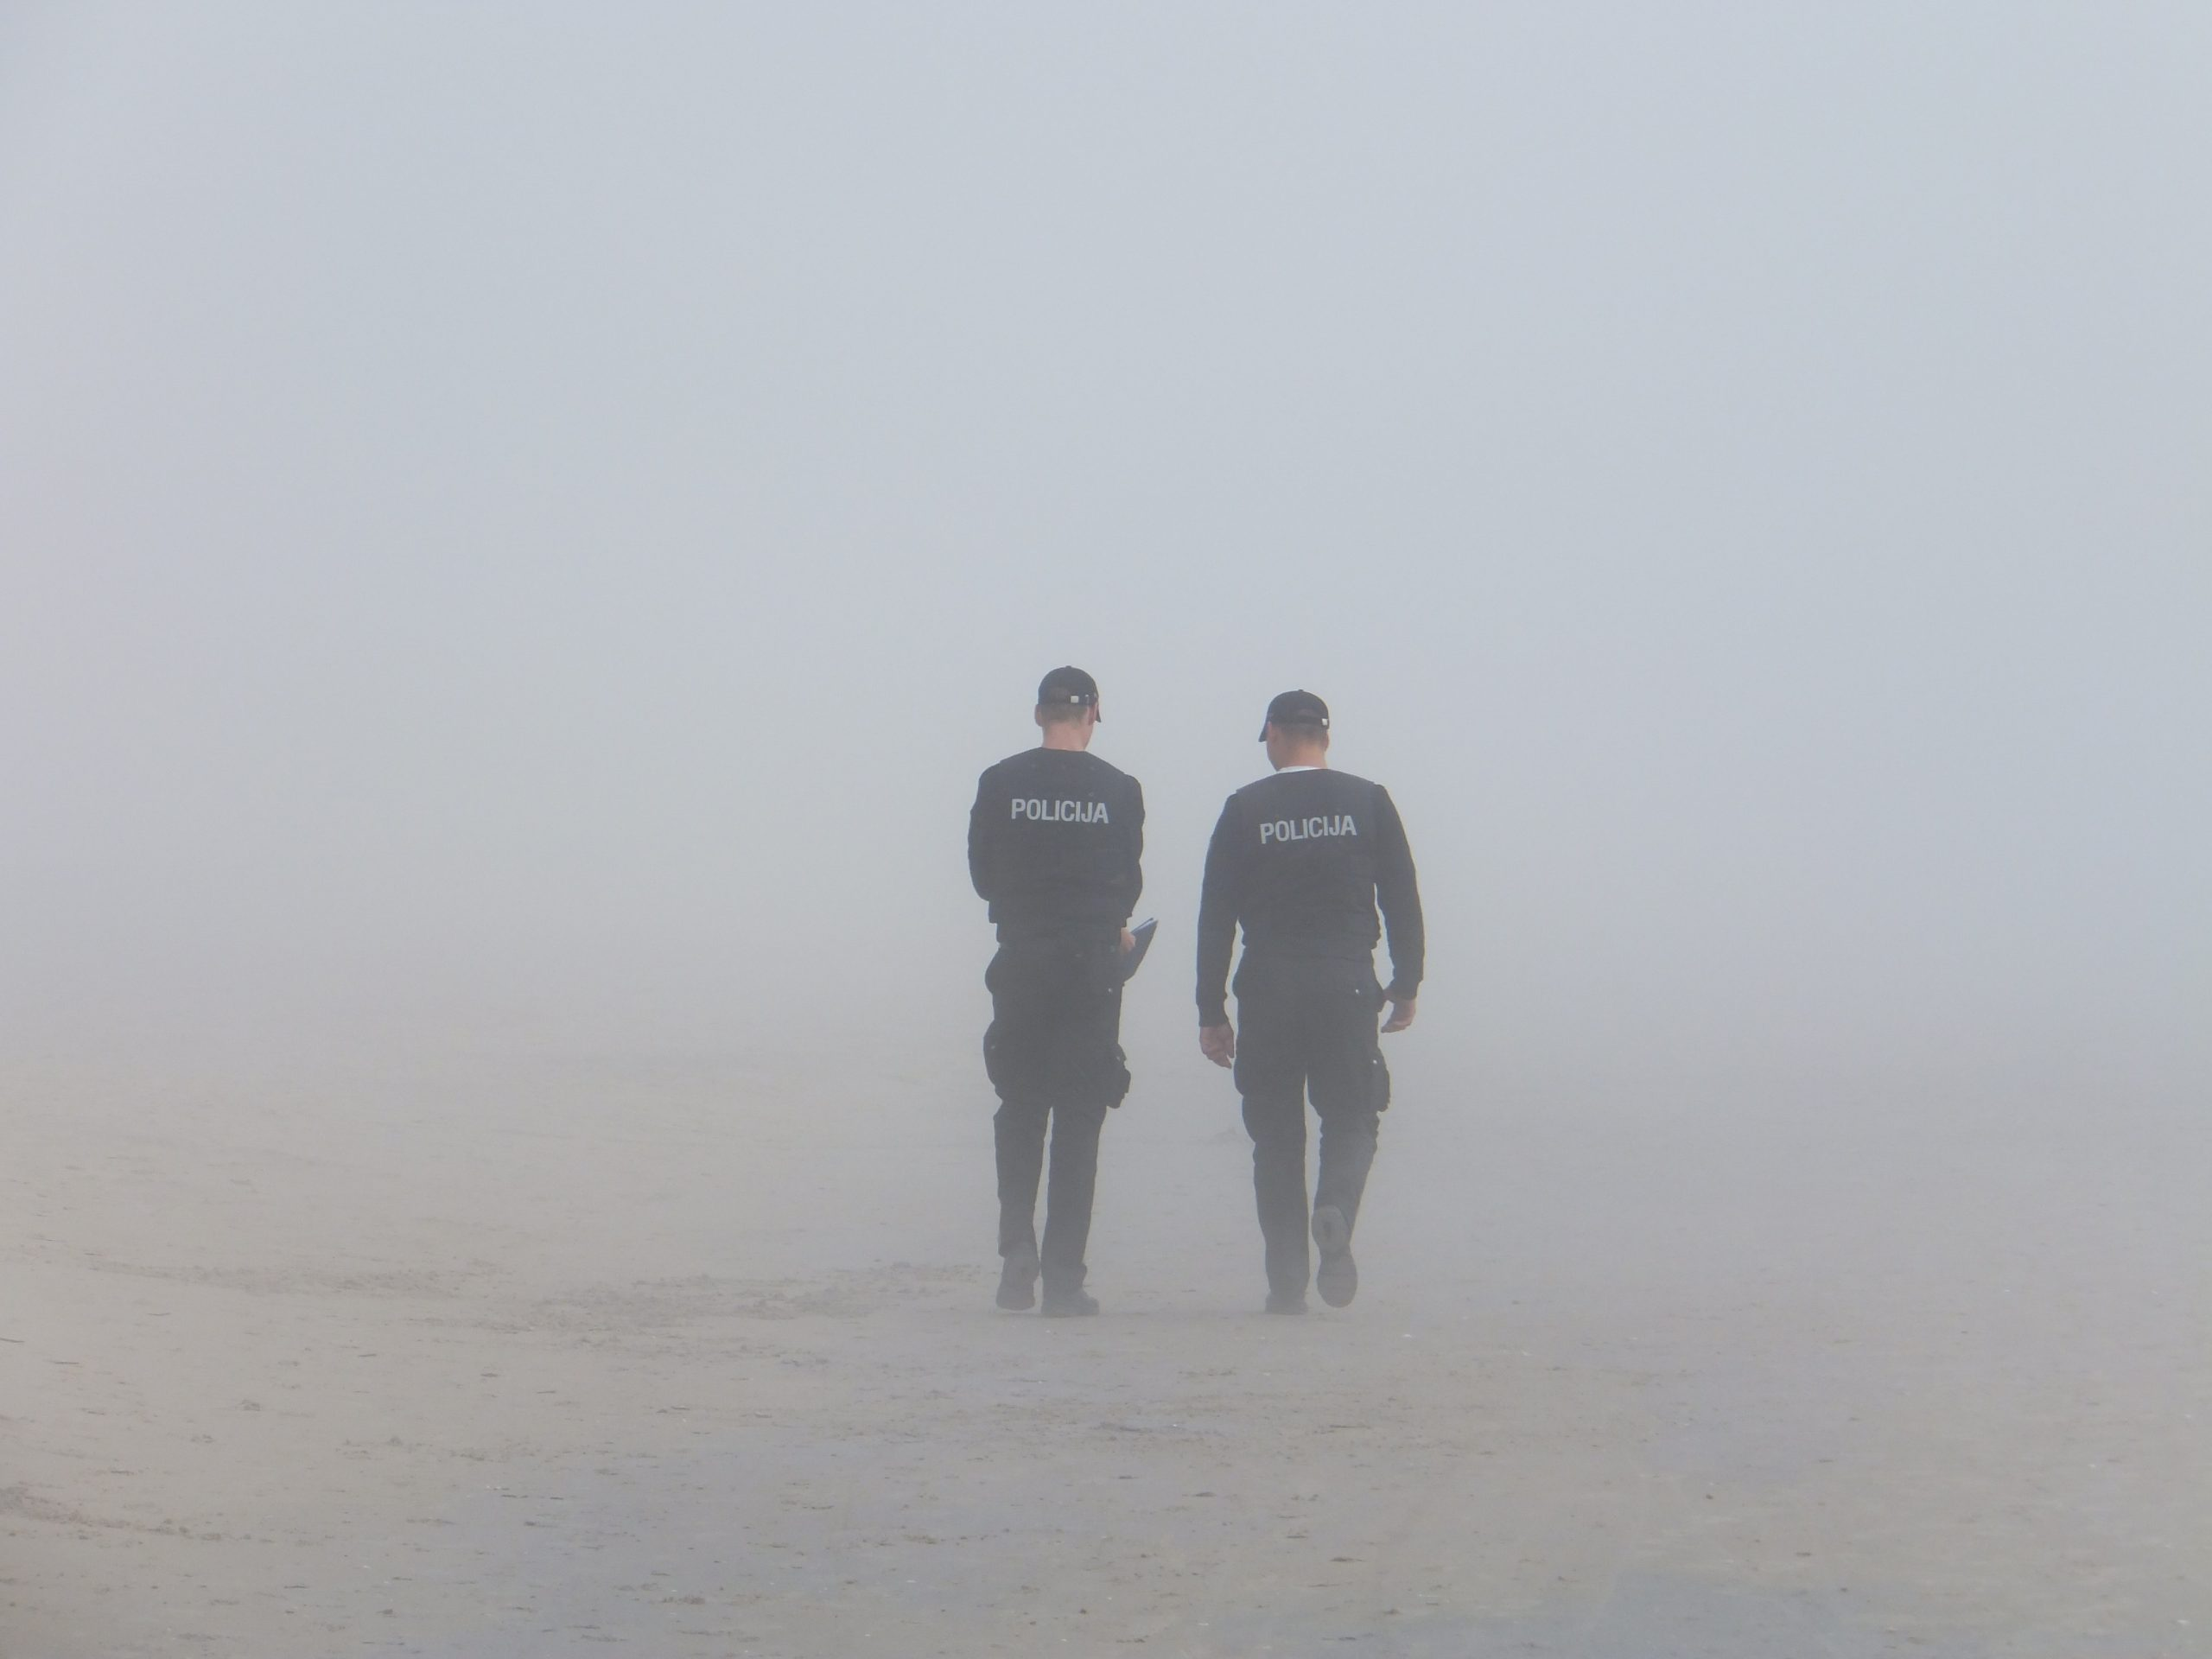 fog-police-seaside-38442